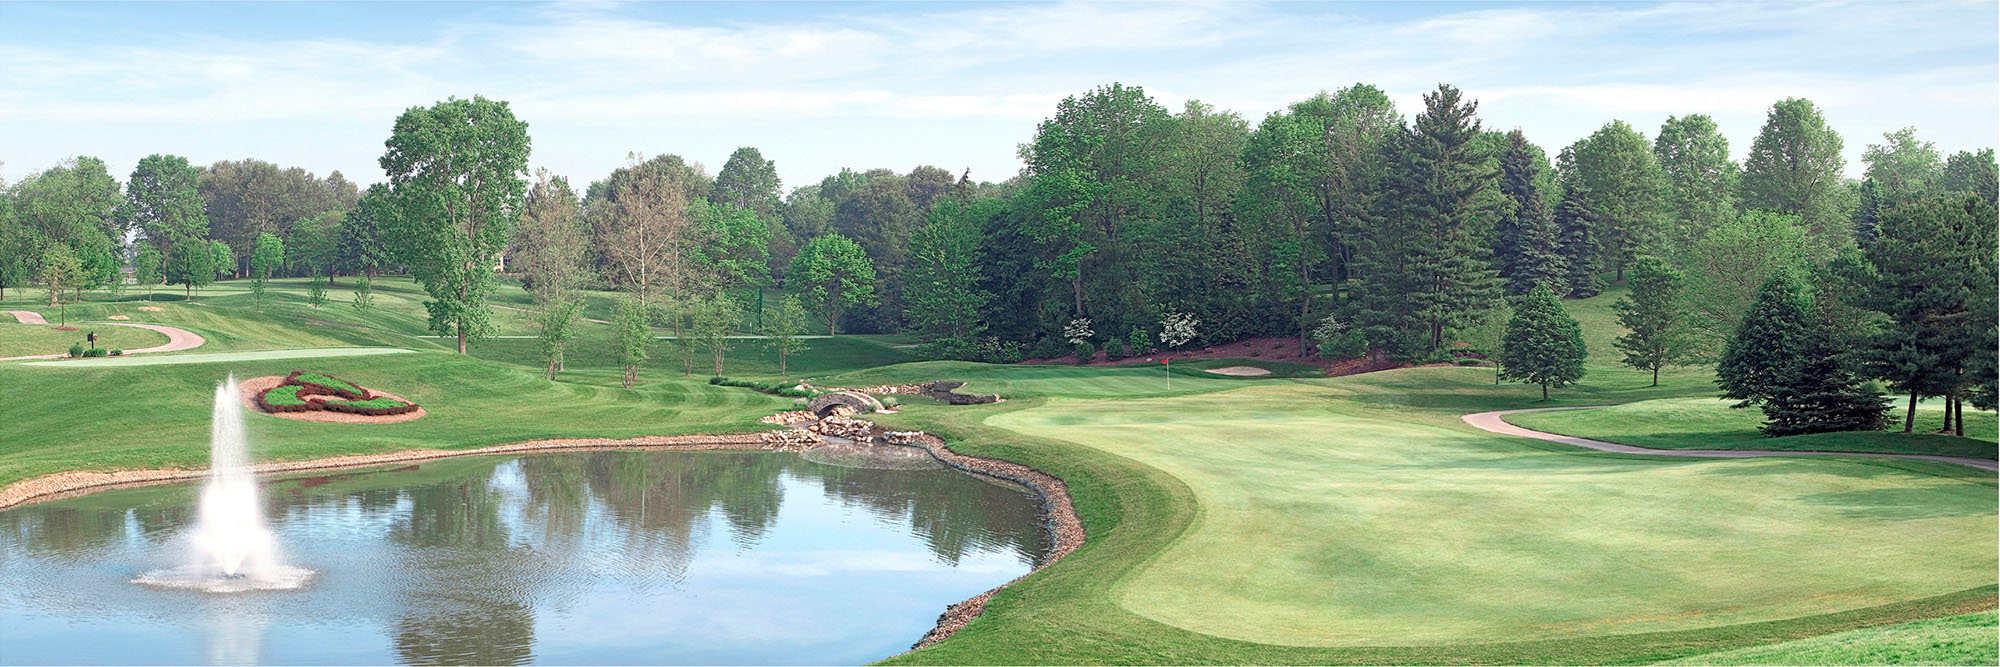 Golf Course Image - Westfield Country Club No. 8